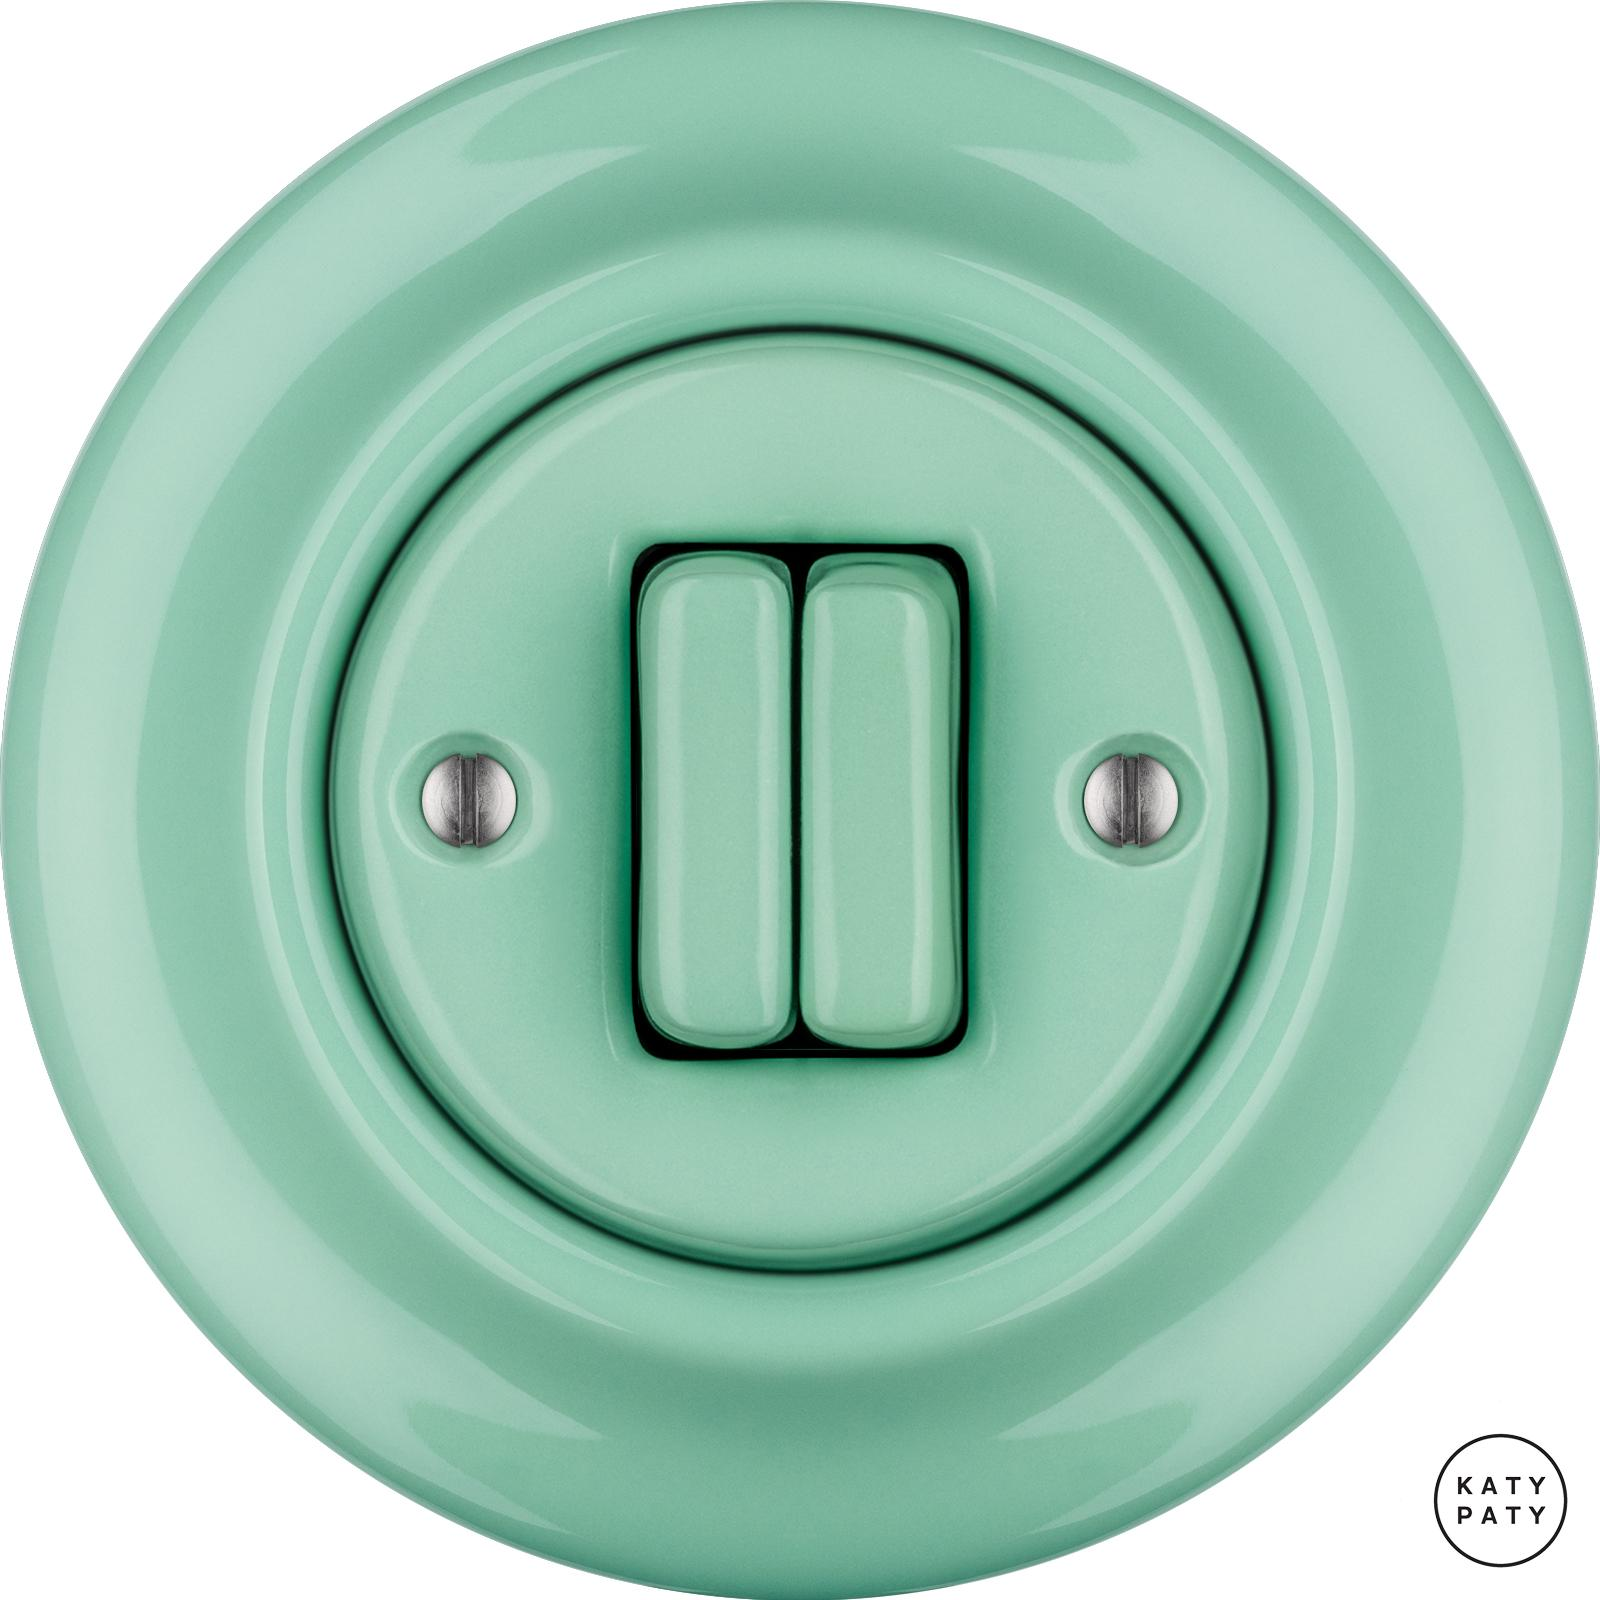 Porcelain switches - 2 gang ()  - PNOE MENTOL | Katy Paty